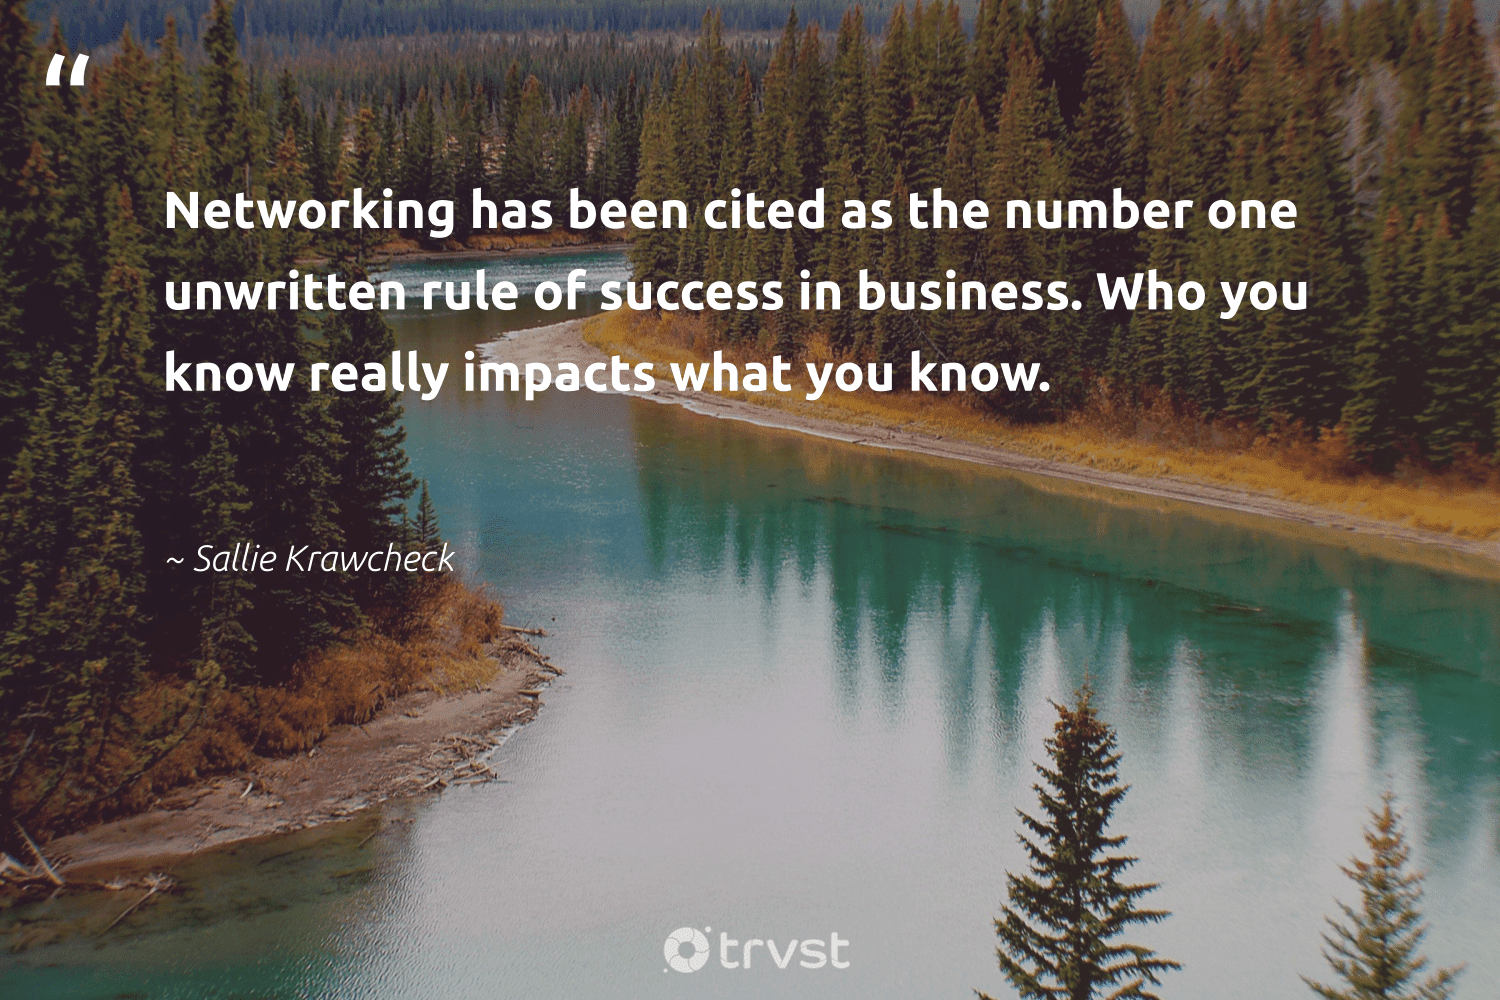 """""""Networking has been cited as the number one unwritten rule of success in business. Who you know really impacts what you know.""""  - Sallie Krawcheck #trvst #quotes #impacts #success #focus #workhard #softskills #dosomething #motivation #successtips #futureofwork #socialchange"""